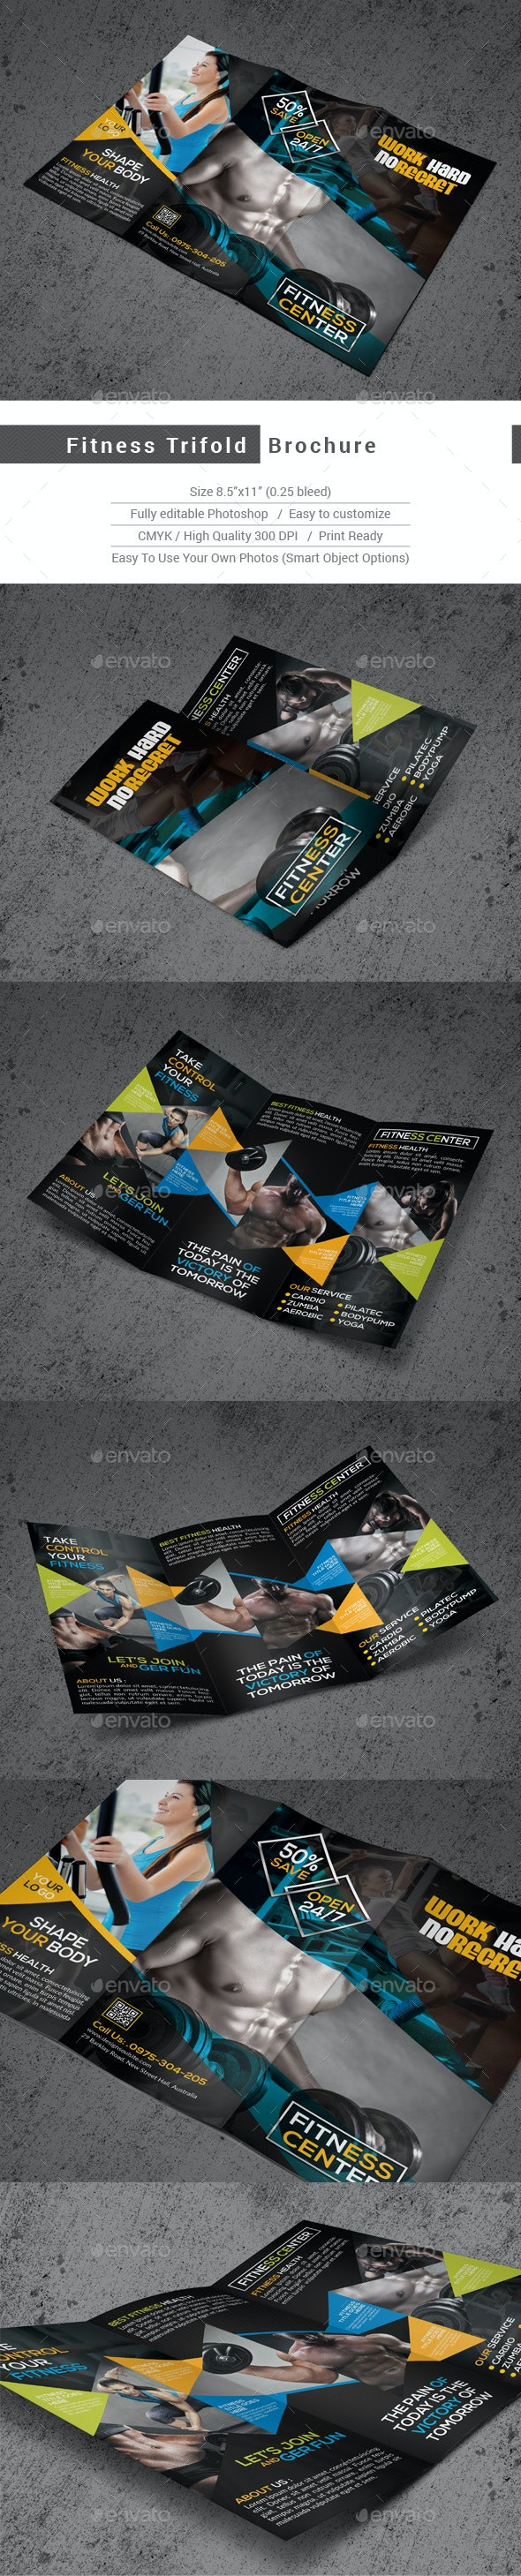 Fitness Trifold Brochure - Corporate Brochures